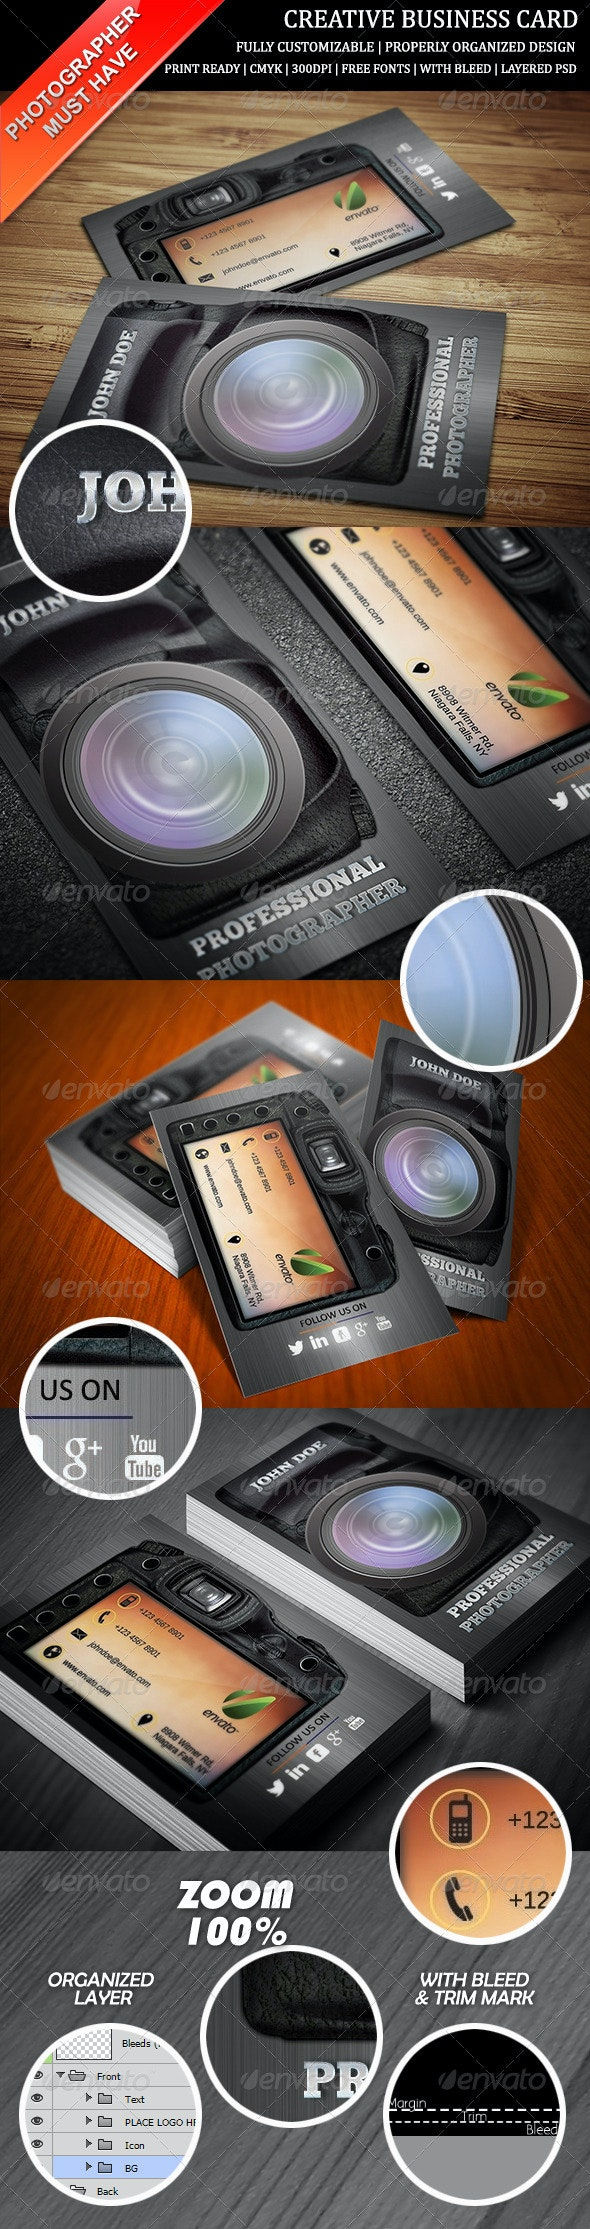 Photography Creative Business Card - Creative Business Cards